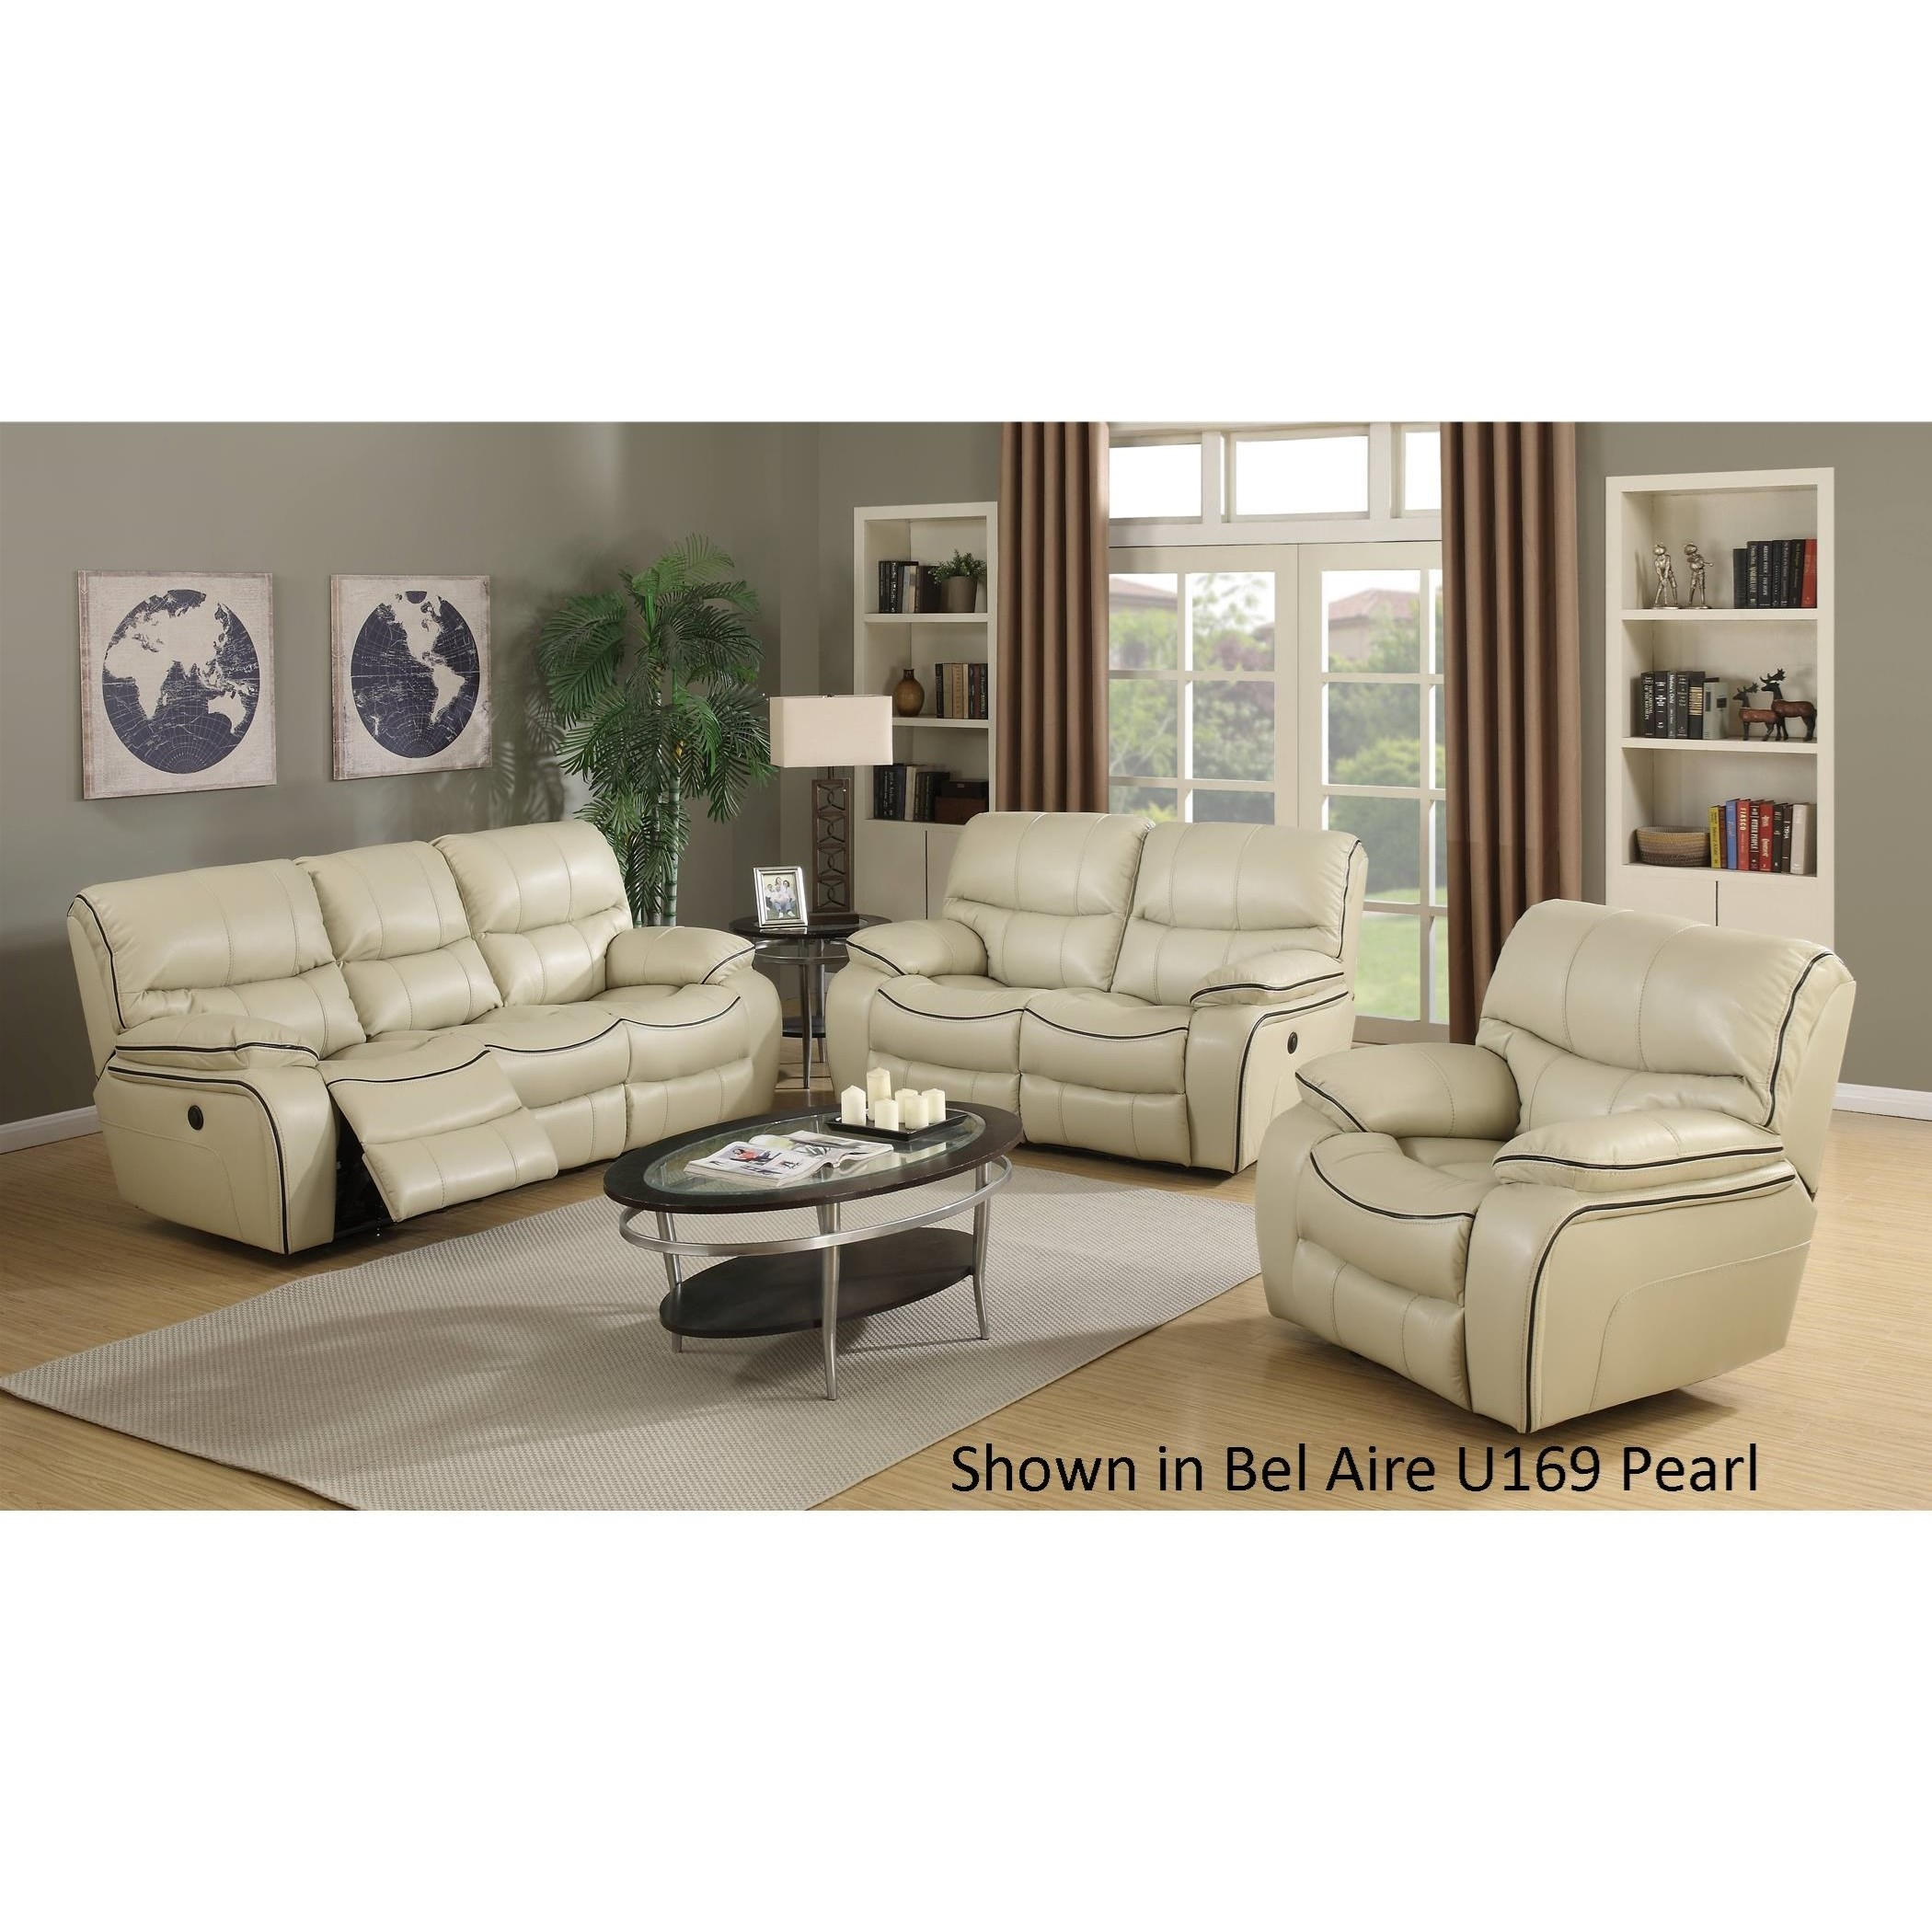 Vino power reclining living room group dream home for Living room furniture groups